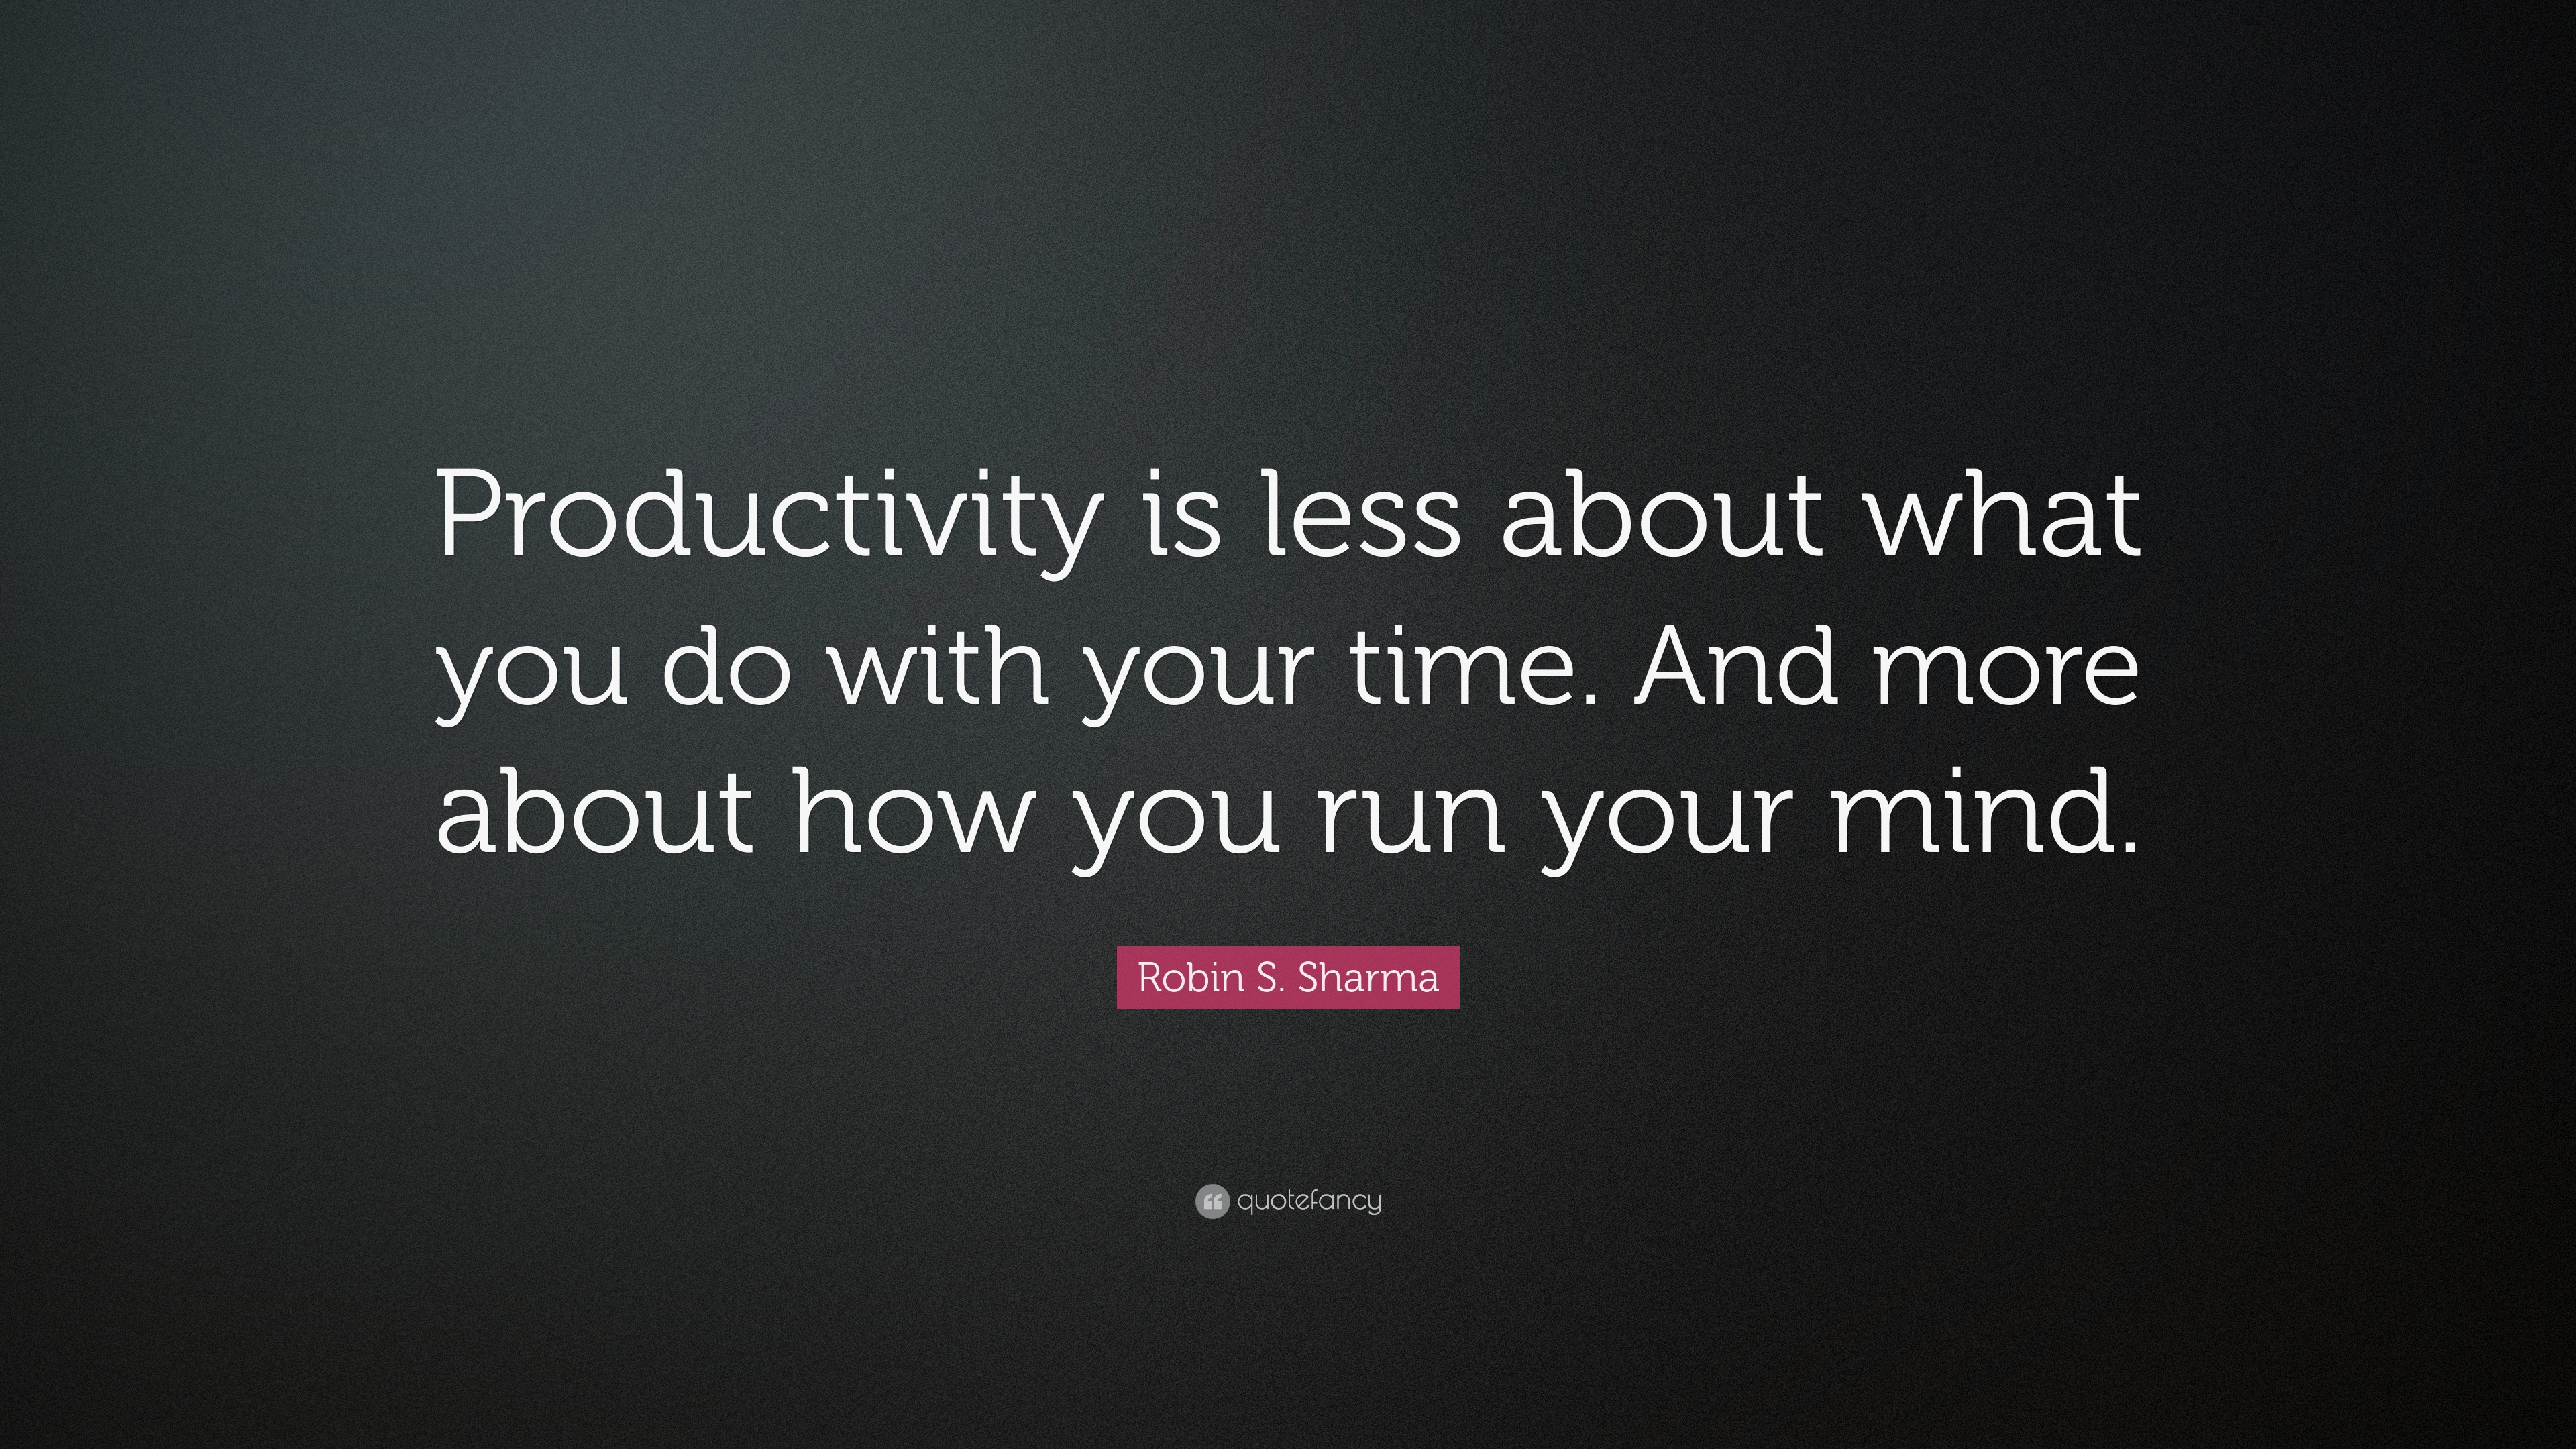 Images Of Inspiring Quotes Wallpaper Productivity Quotes 33 Wallpapers Quotefancy